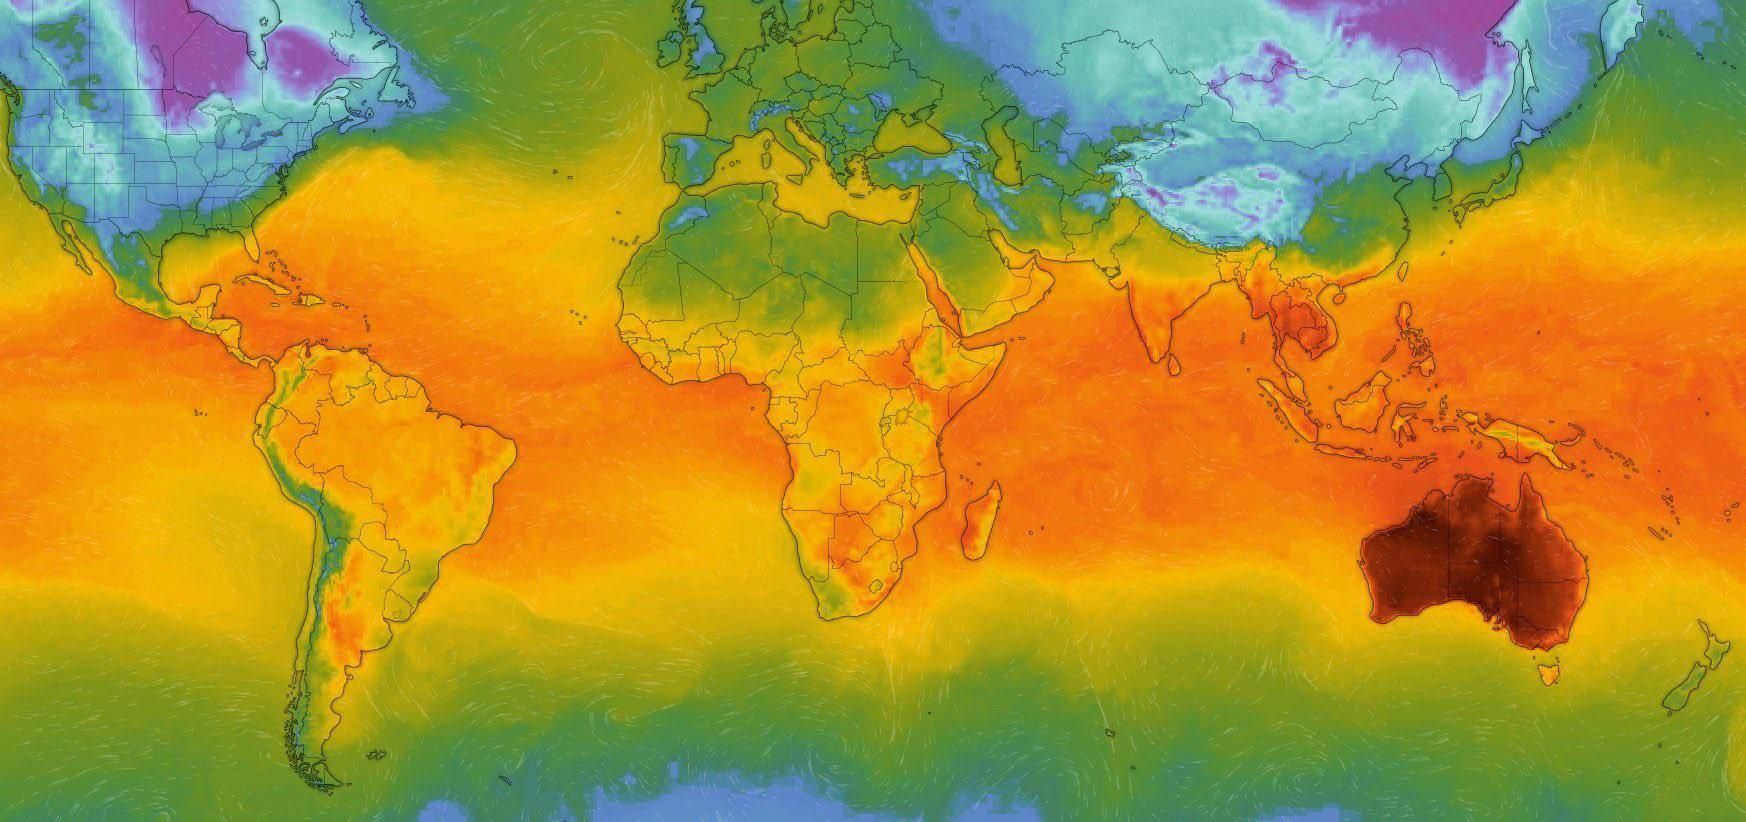 Today's global temperature map. Australia is on fire